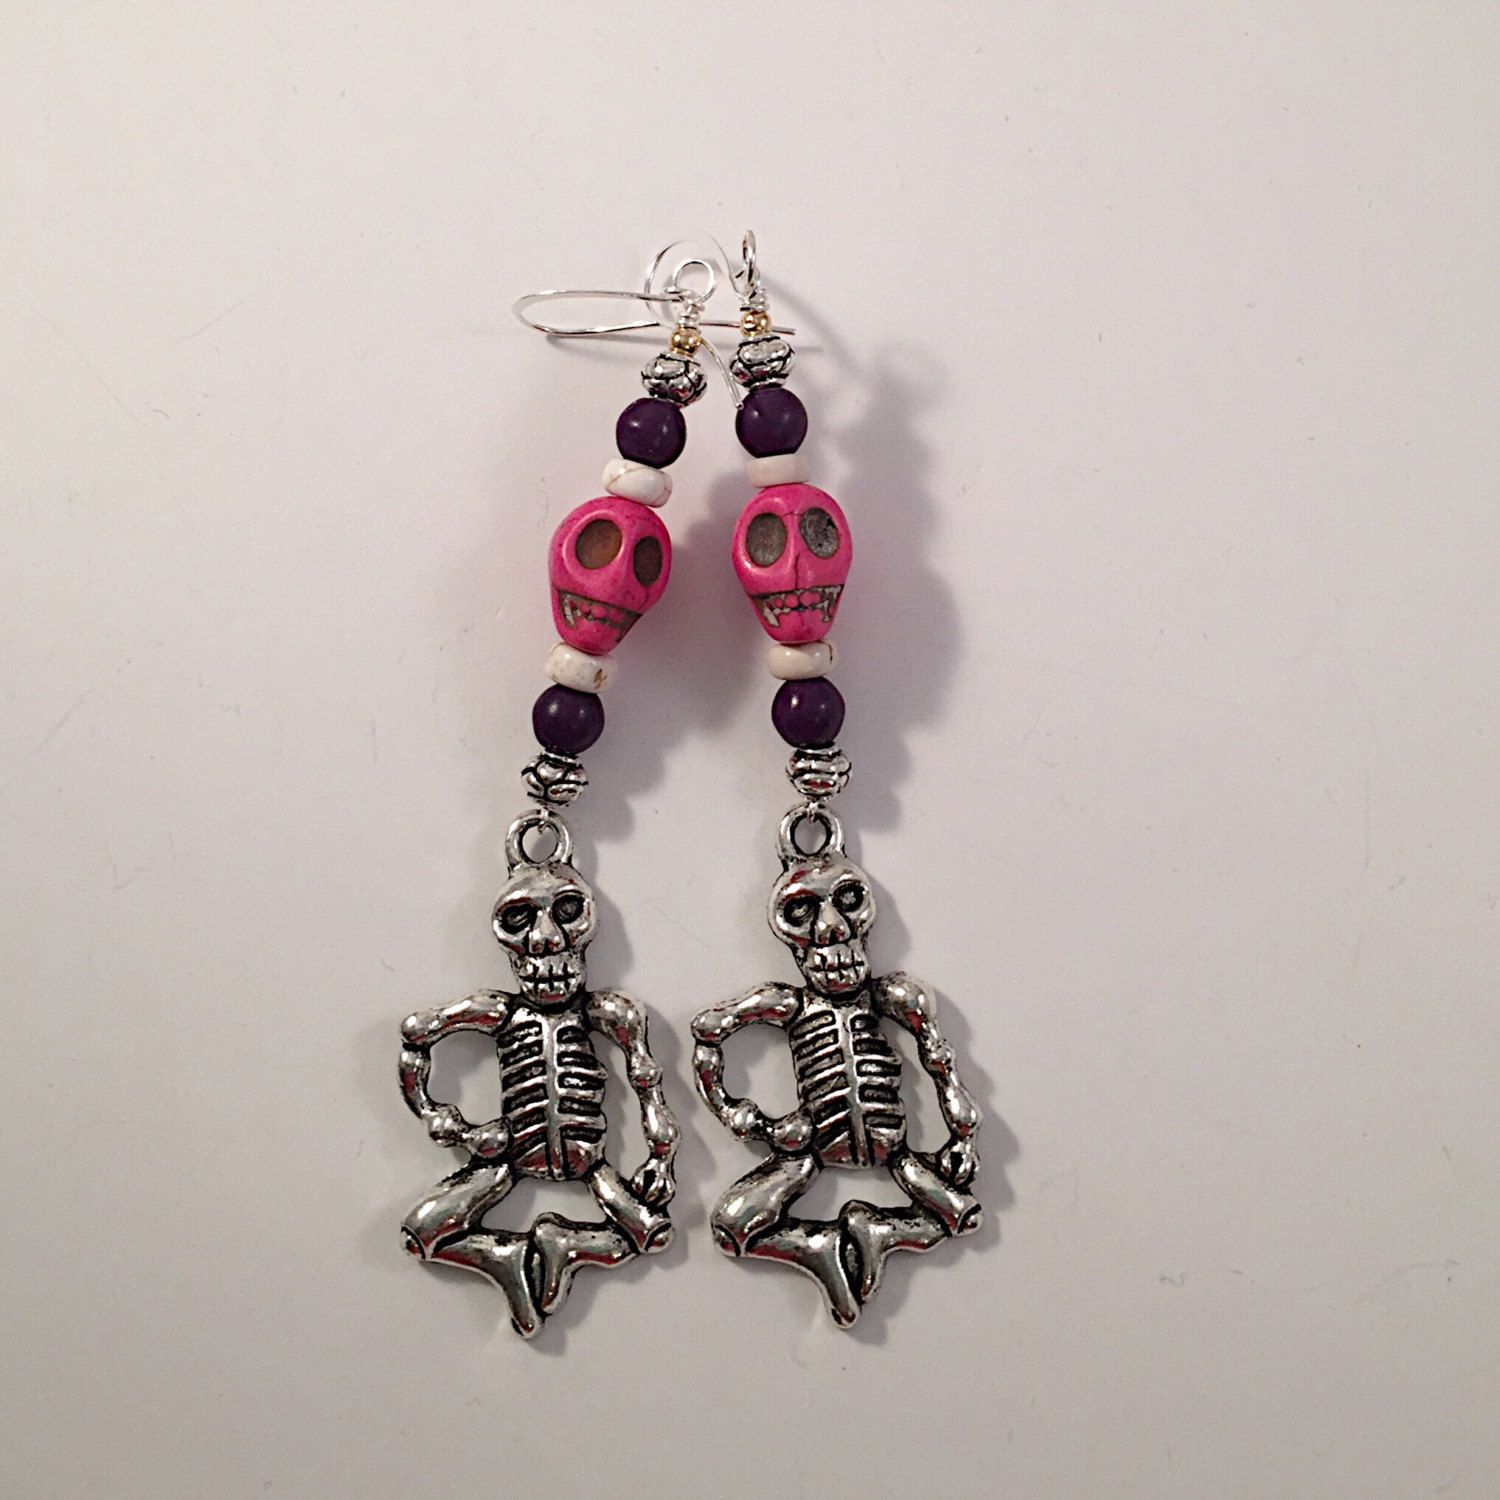 1d0f3eae4 Dias de los Muertos Beaded Earrings Howlite Magnesite Bali Silver and Silver  Plate Charm - Boho Chic - Trending Jewelry by Lilyspad58 on Etsy